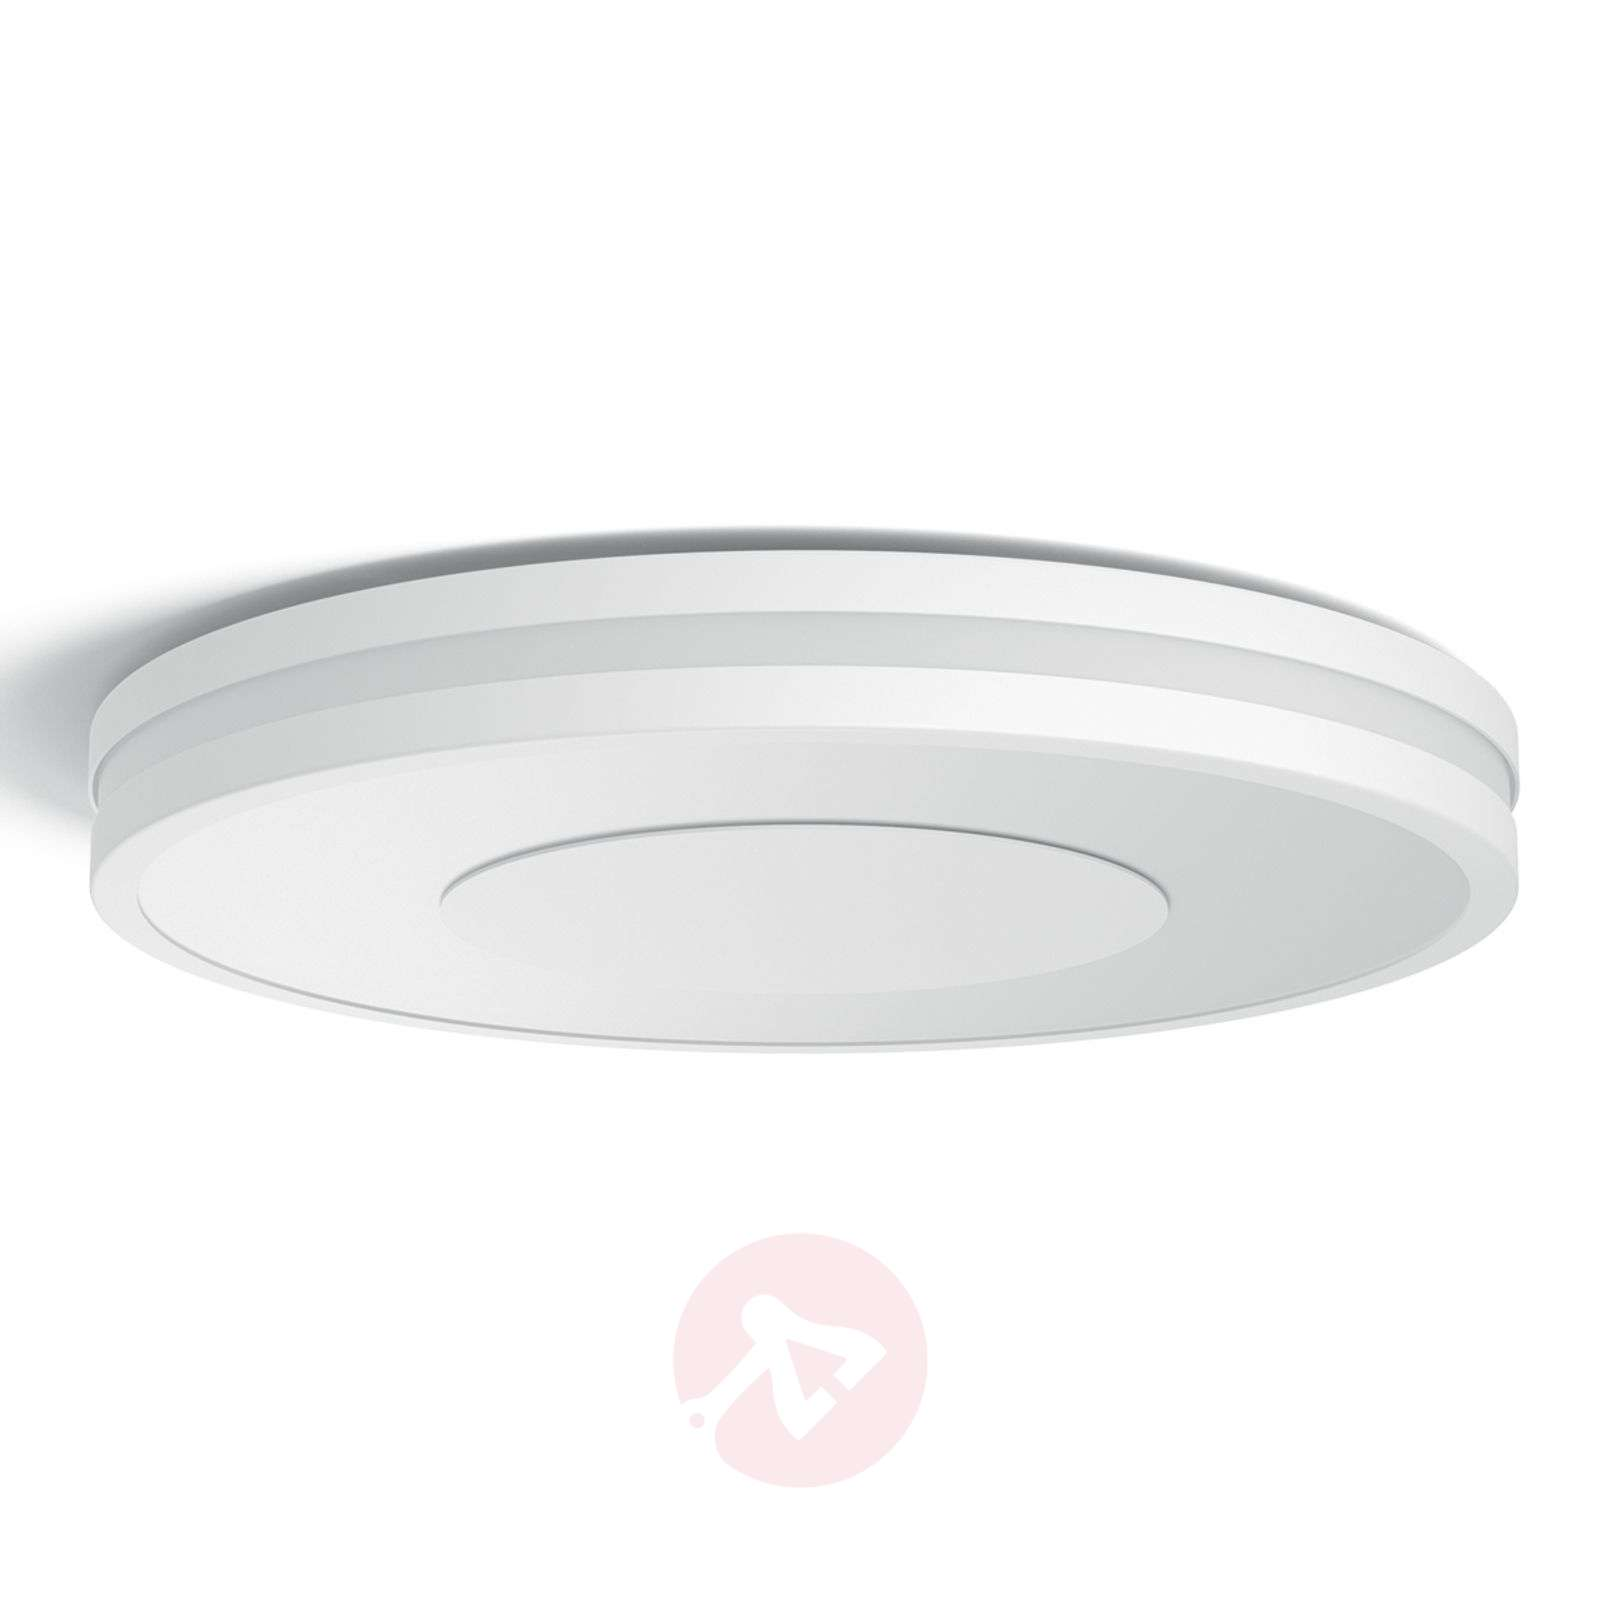 Functional led ceiling lamp philips hue being lights functional led ceiling lamp philips hue being 7531866 01 parisarafo Choice Image